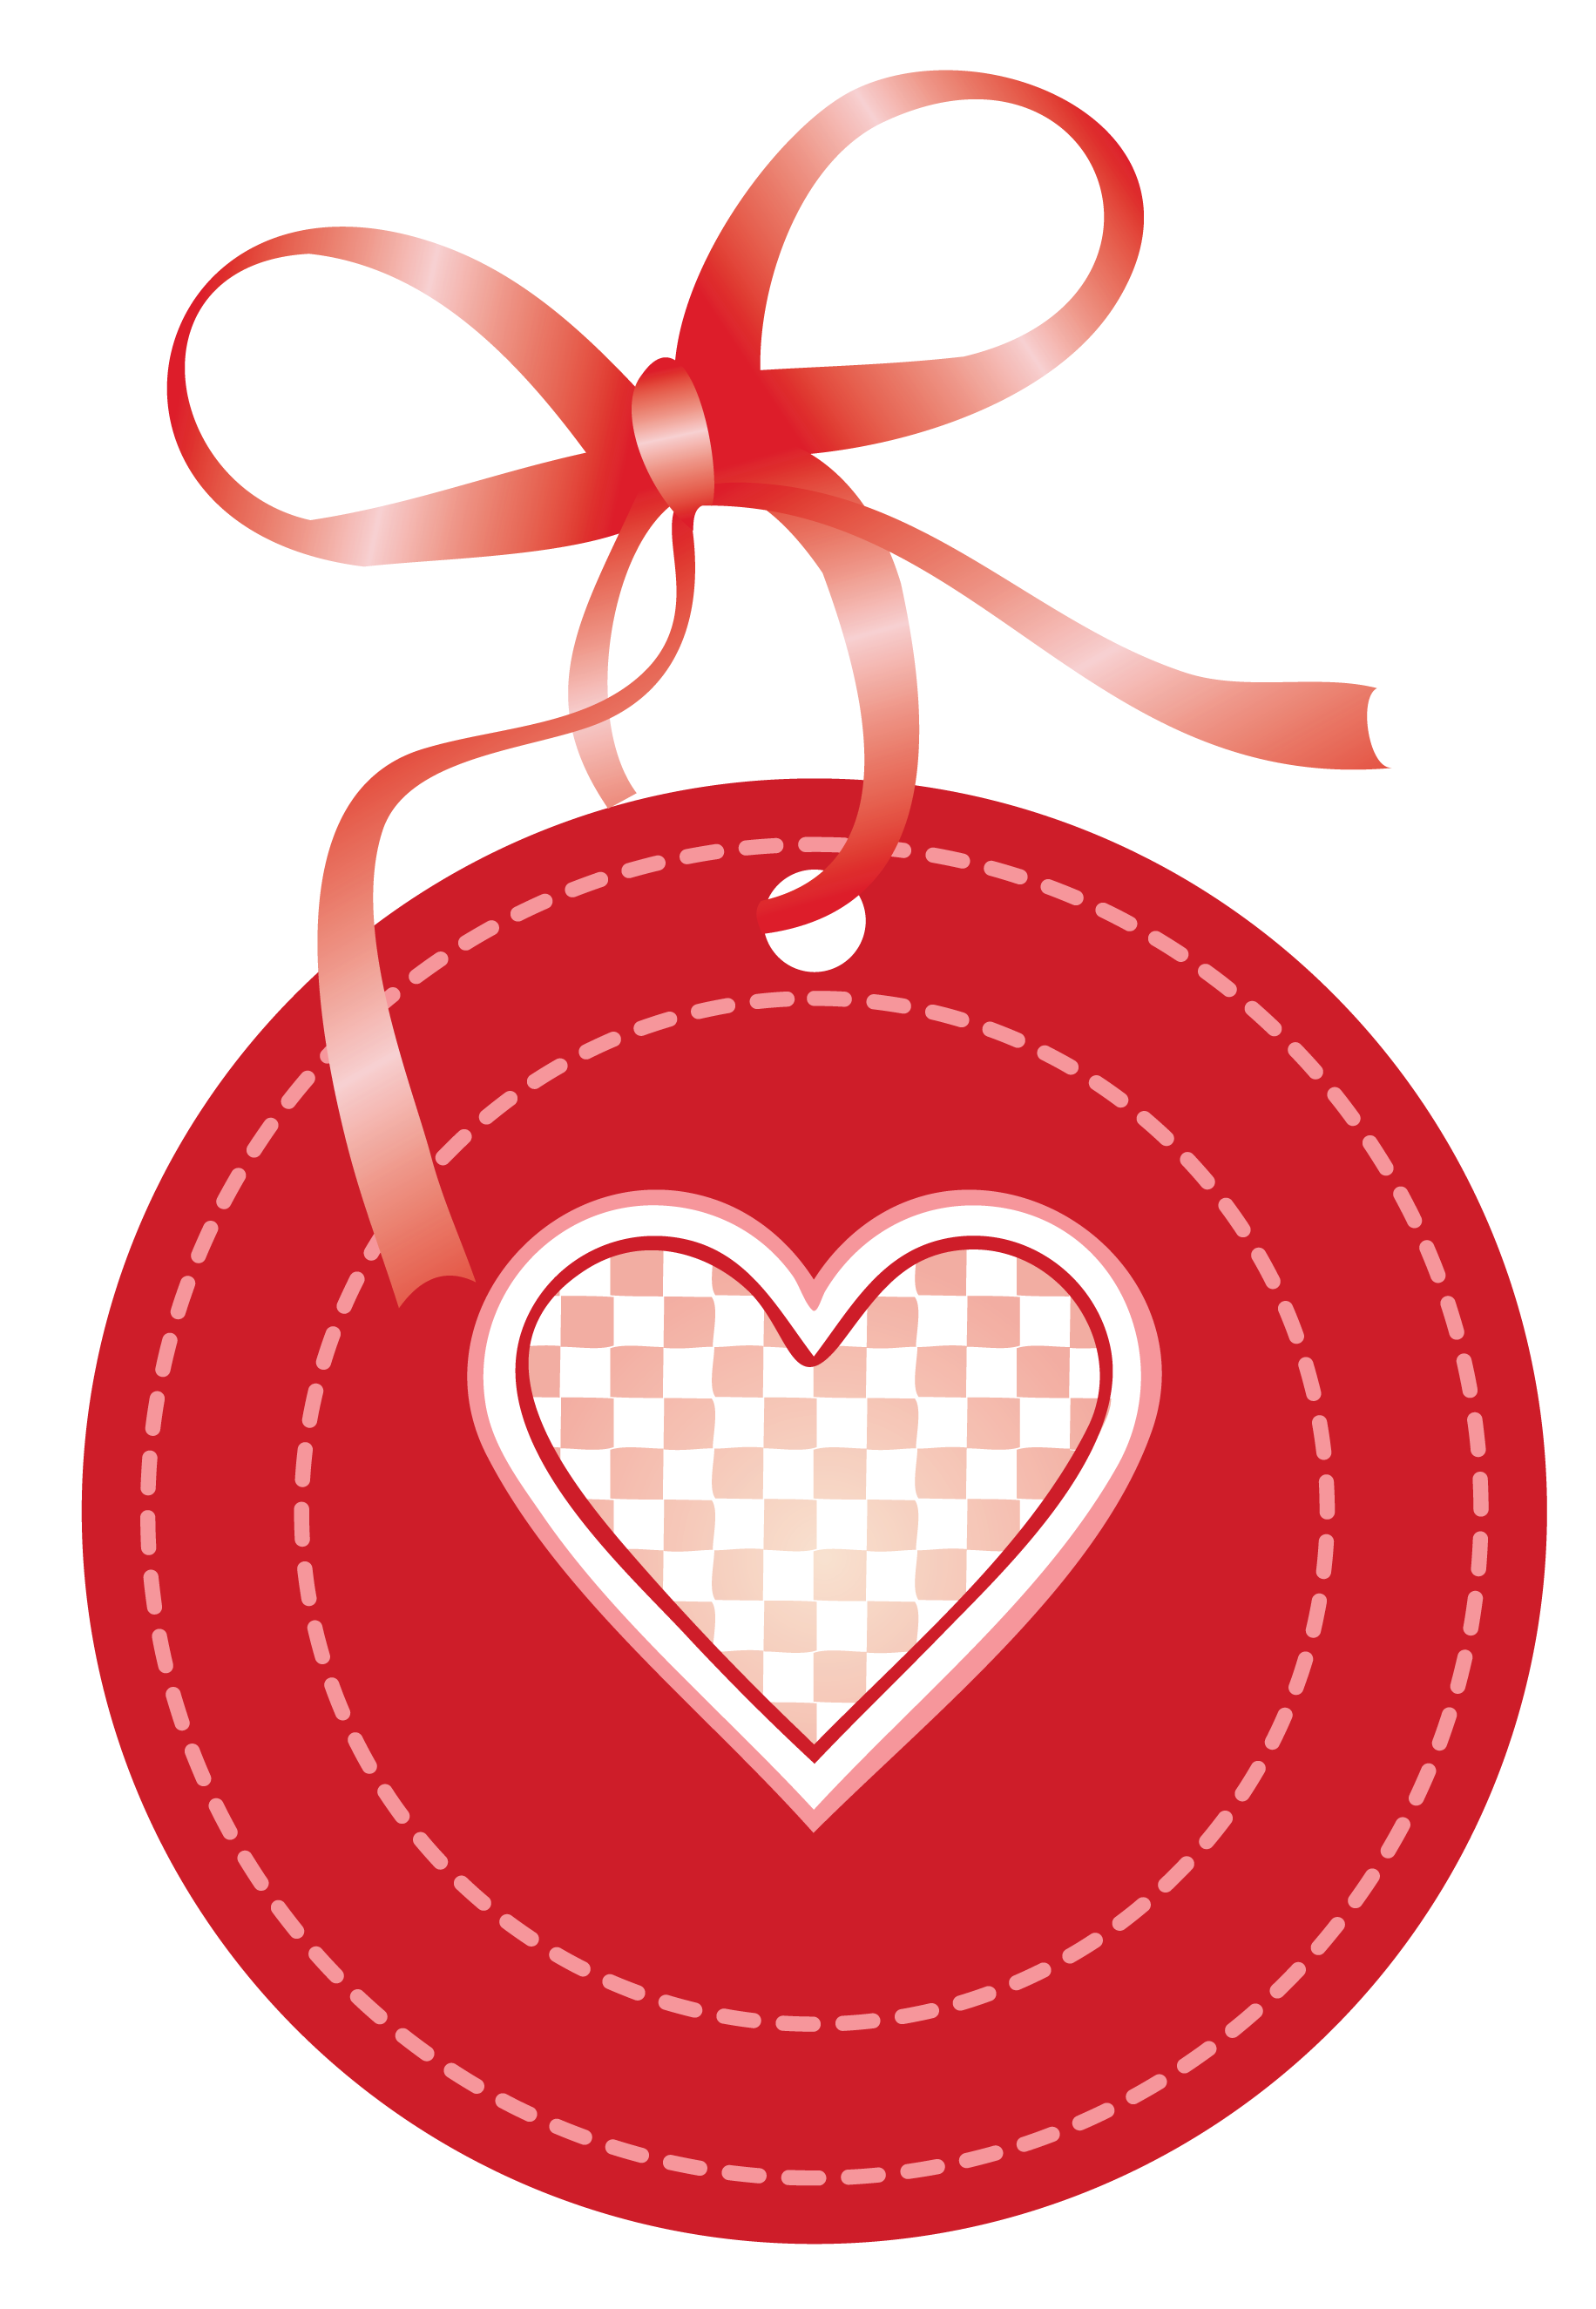 Hearts clipart christmas. Valentine oval label with